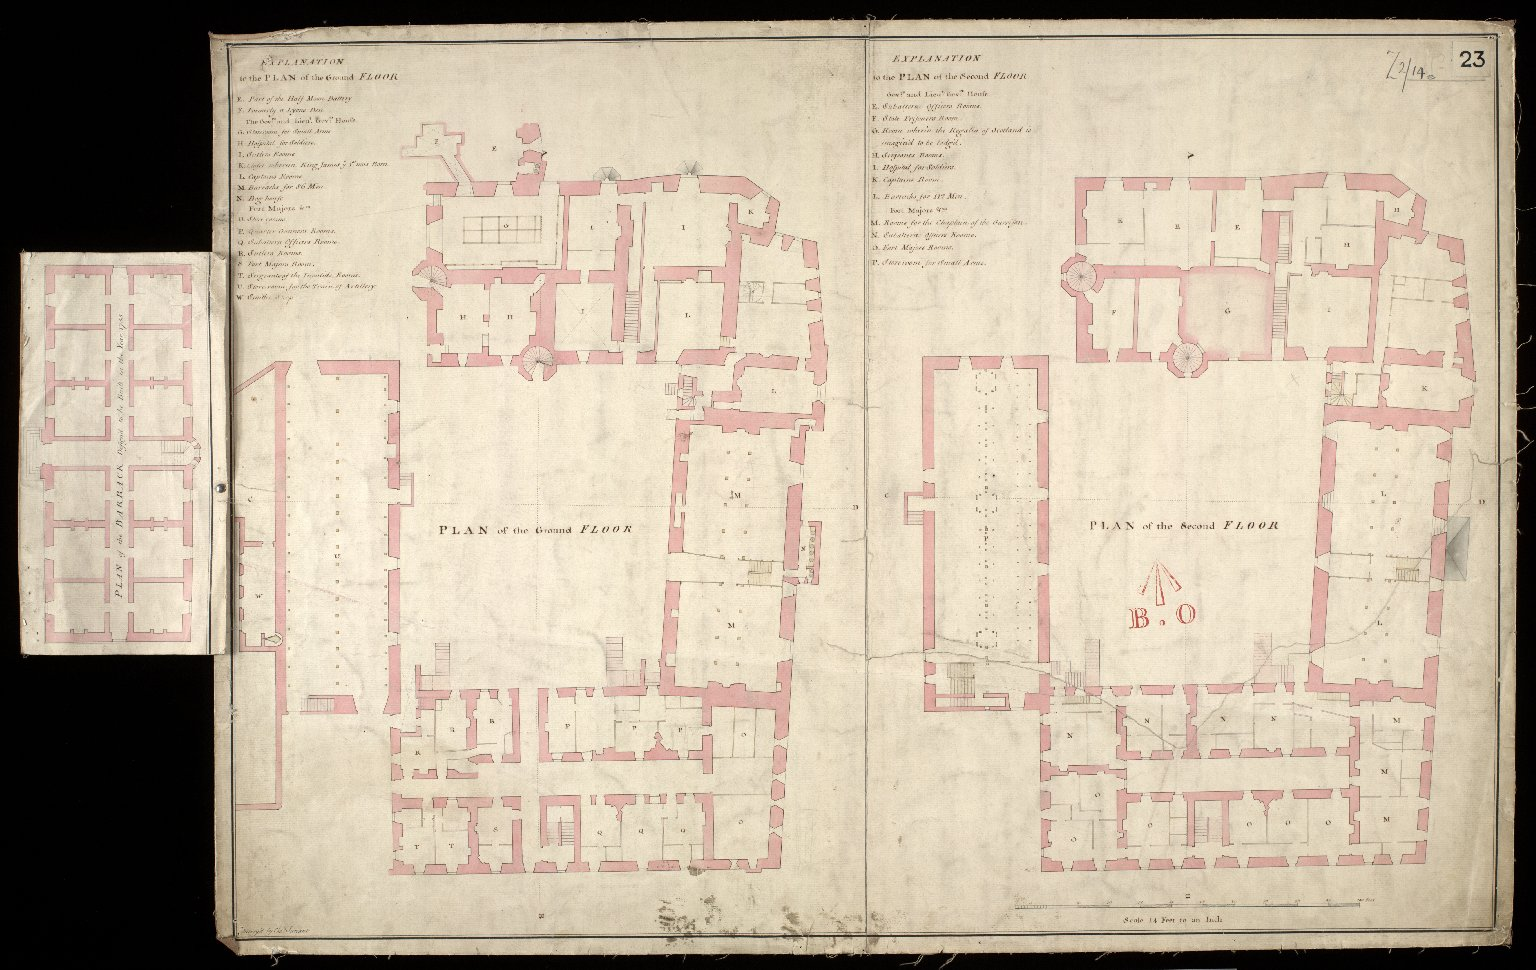 [Edinburgh Castle] : Plan of ground floor : plan of second floor : plan of the Barracks Design'd to be Built in the Year 1755 [1 of 1]